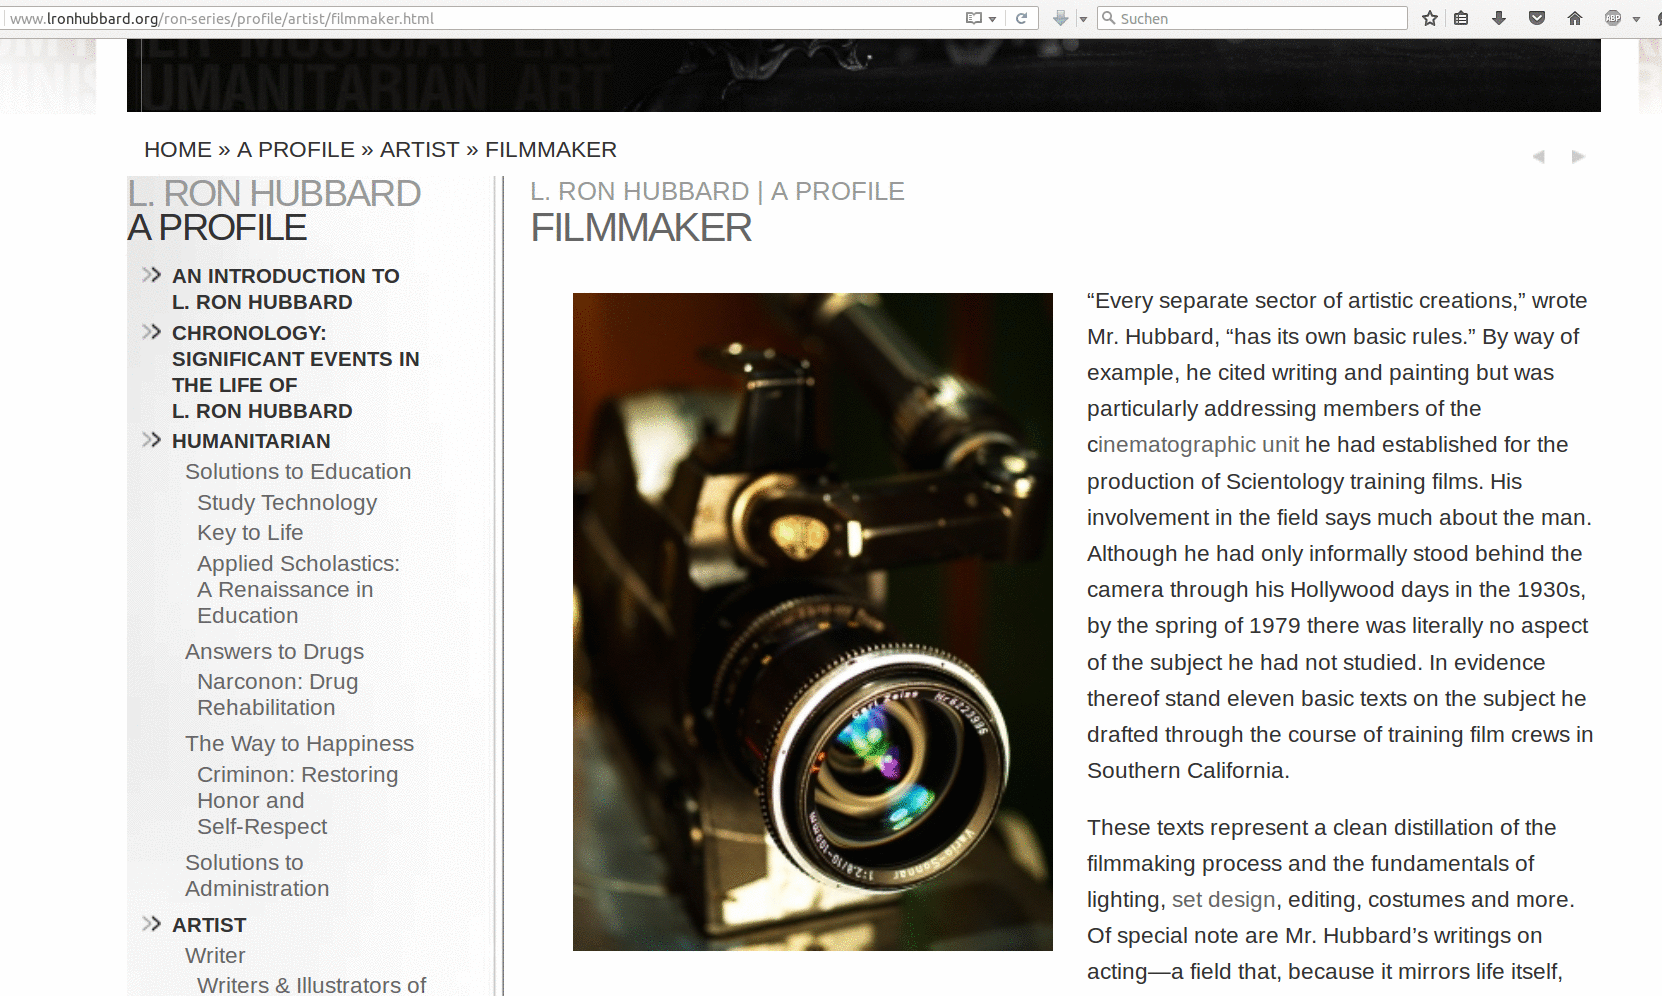 Profile - Filmmaker